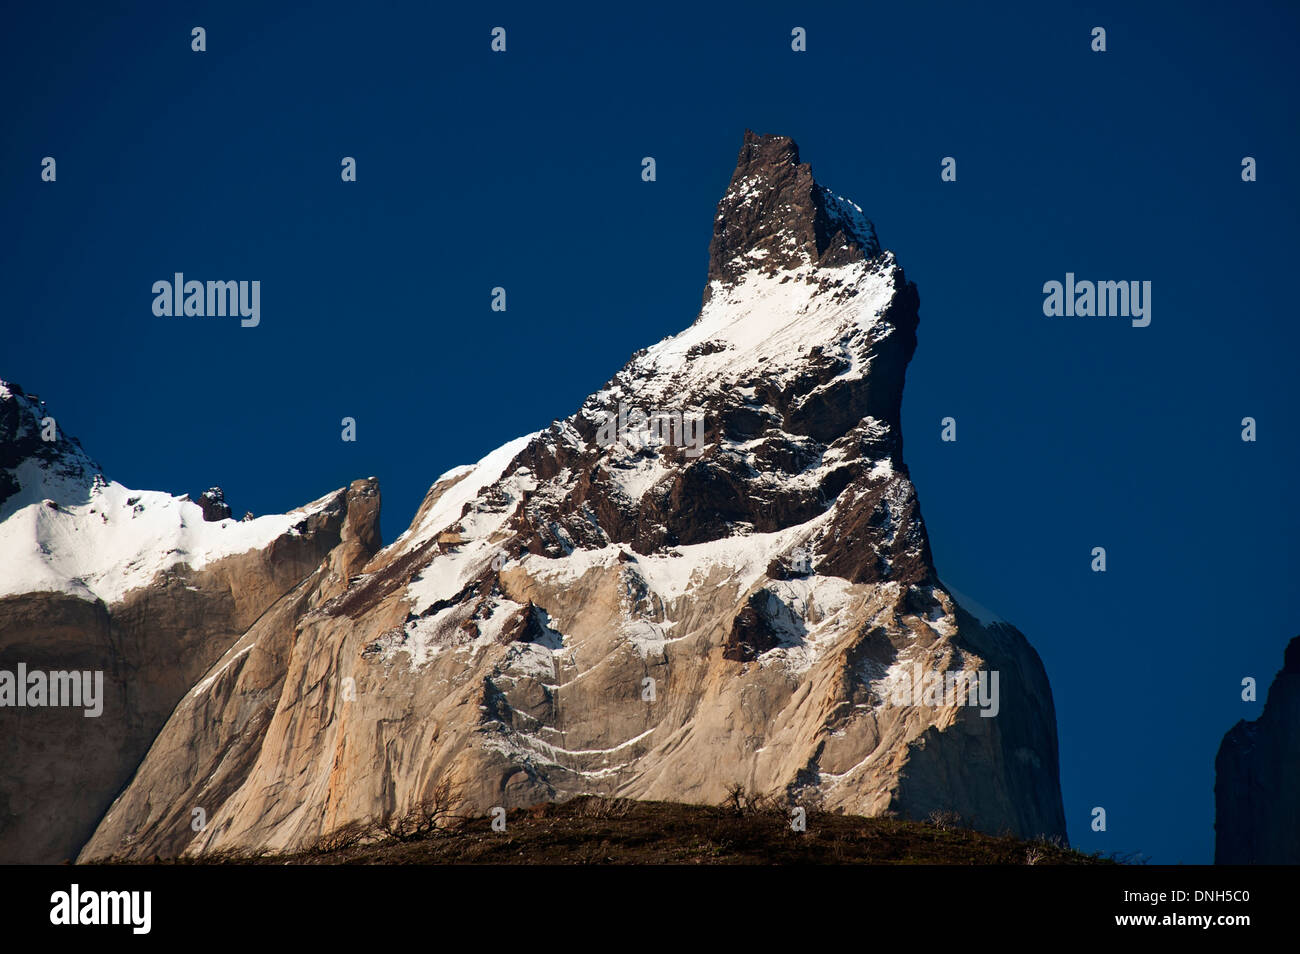 Summit of the Cuerno Principa peak from Cuernos del Paine group - Stock Image